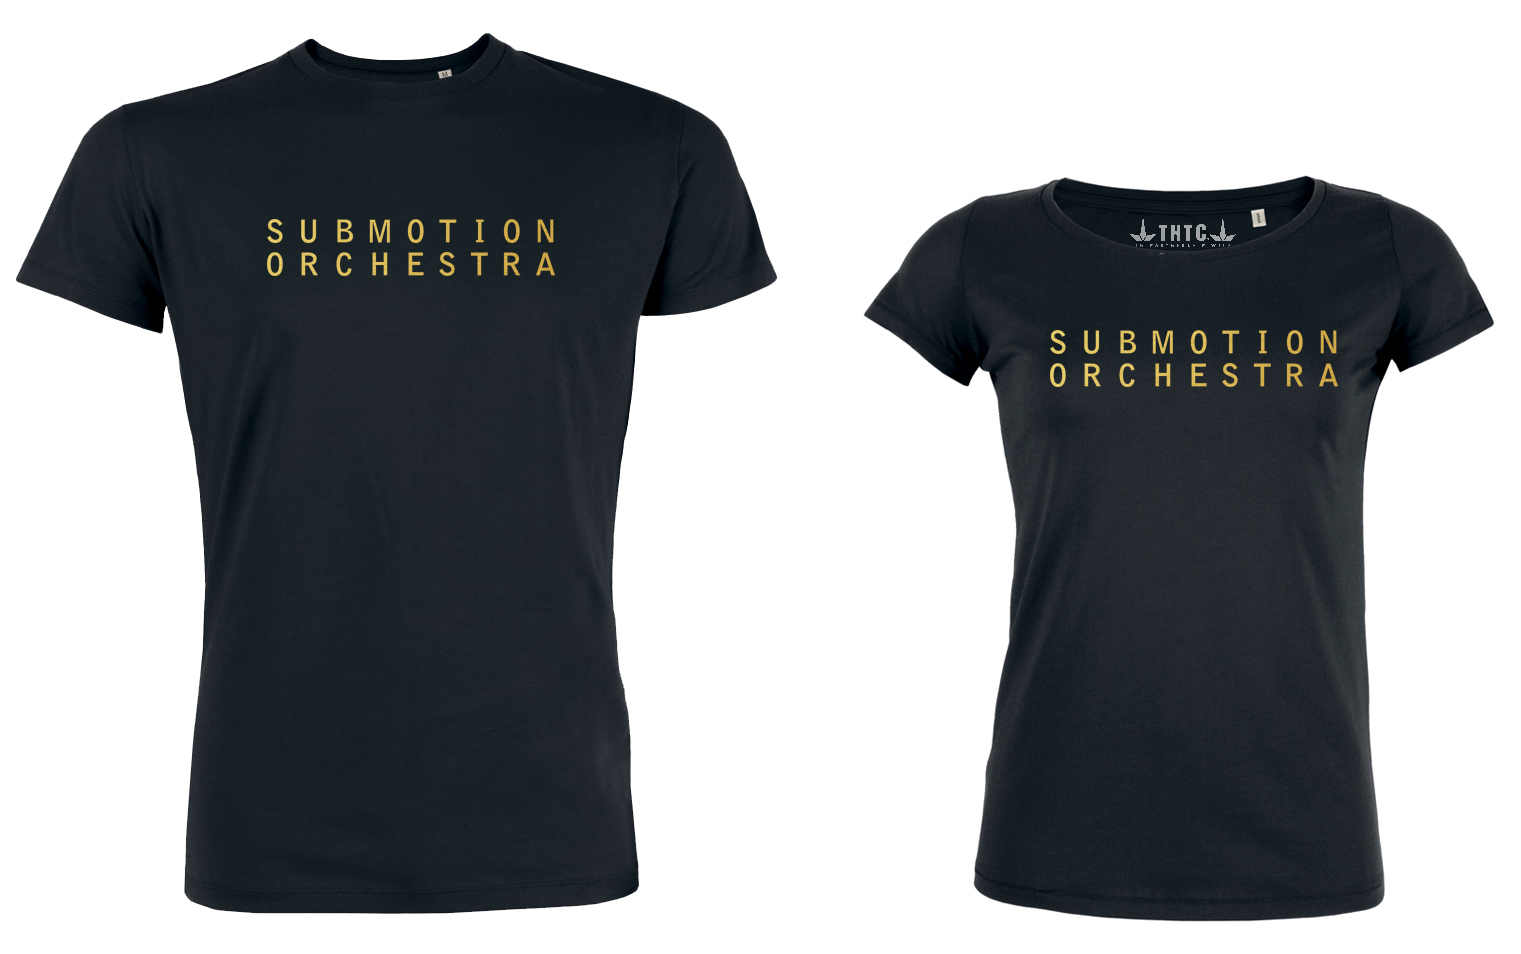 Submotion Orchestra Black & Gold T-Shirt